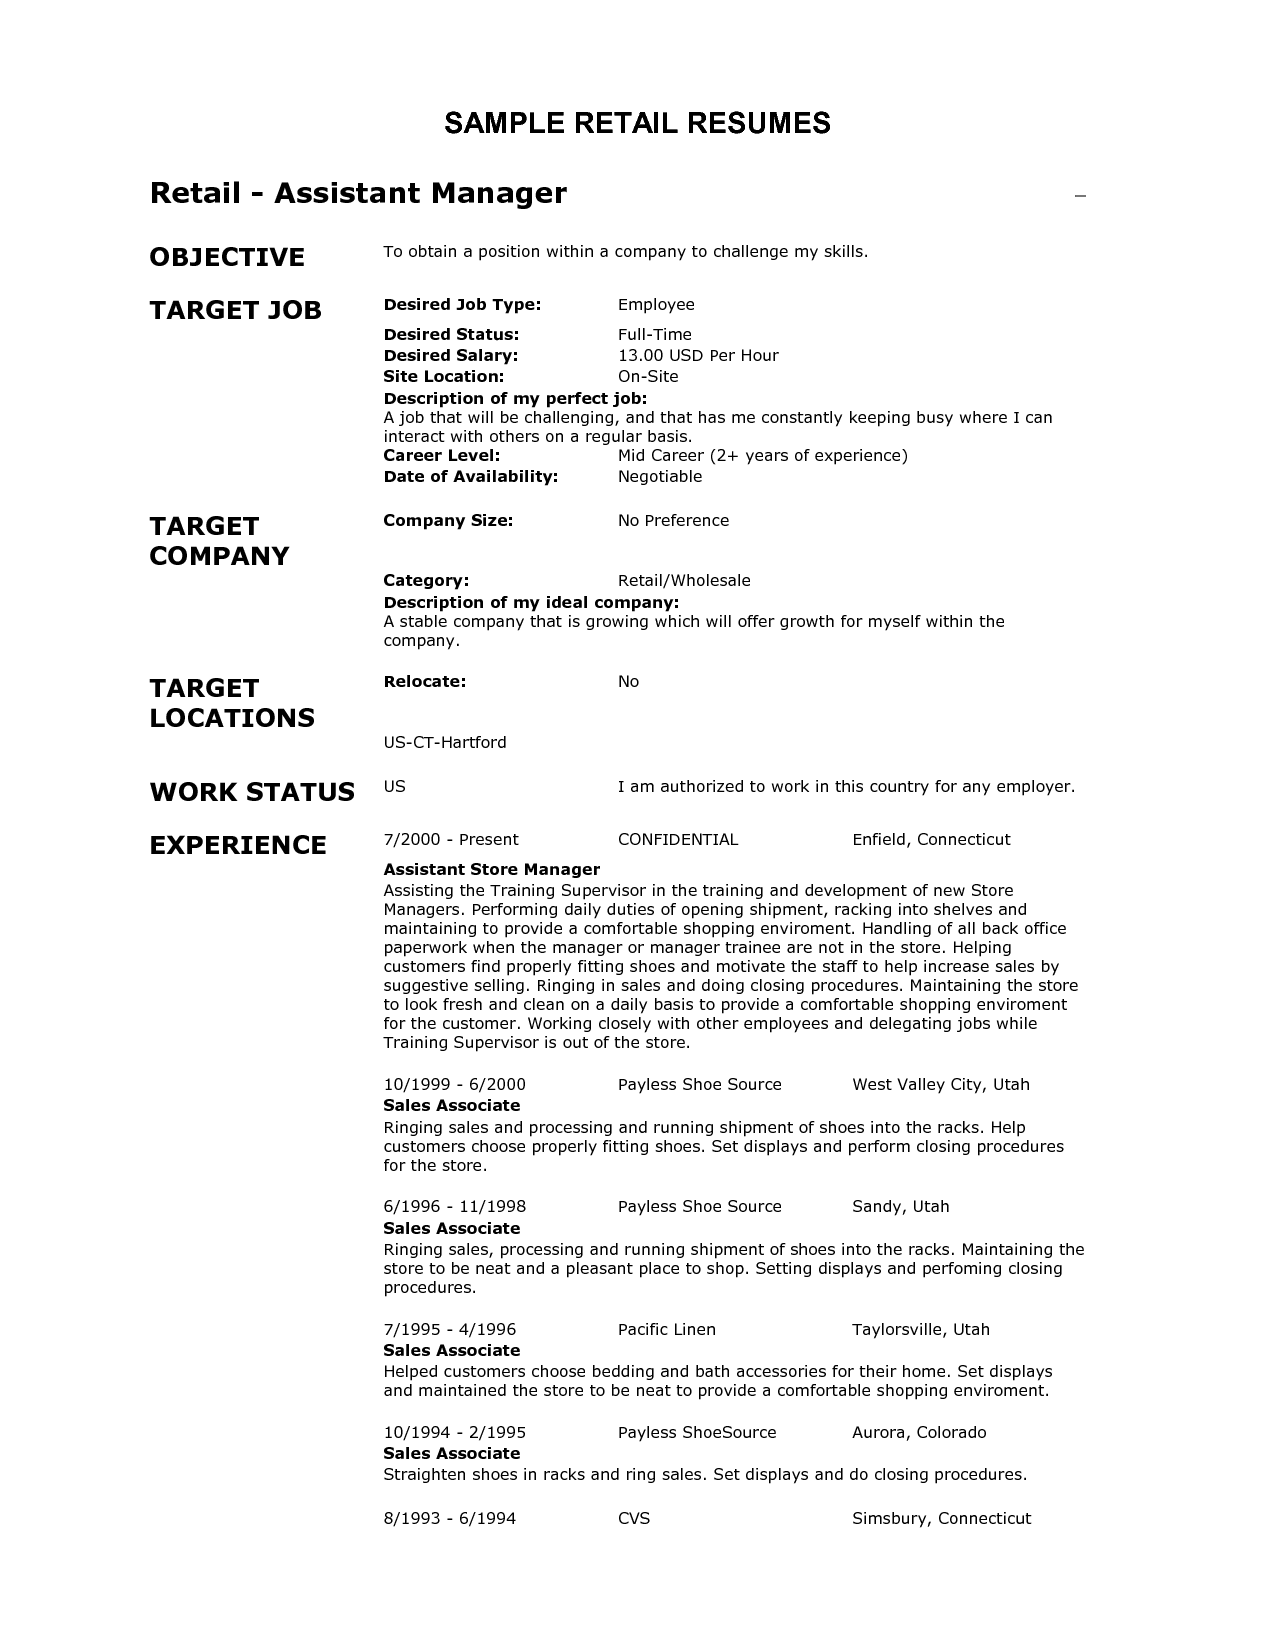 Beautiful Objectives For Resumes In Retail Examples Of Resumes For Retail Jobs For Objectives For Jobs